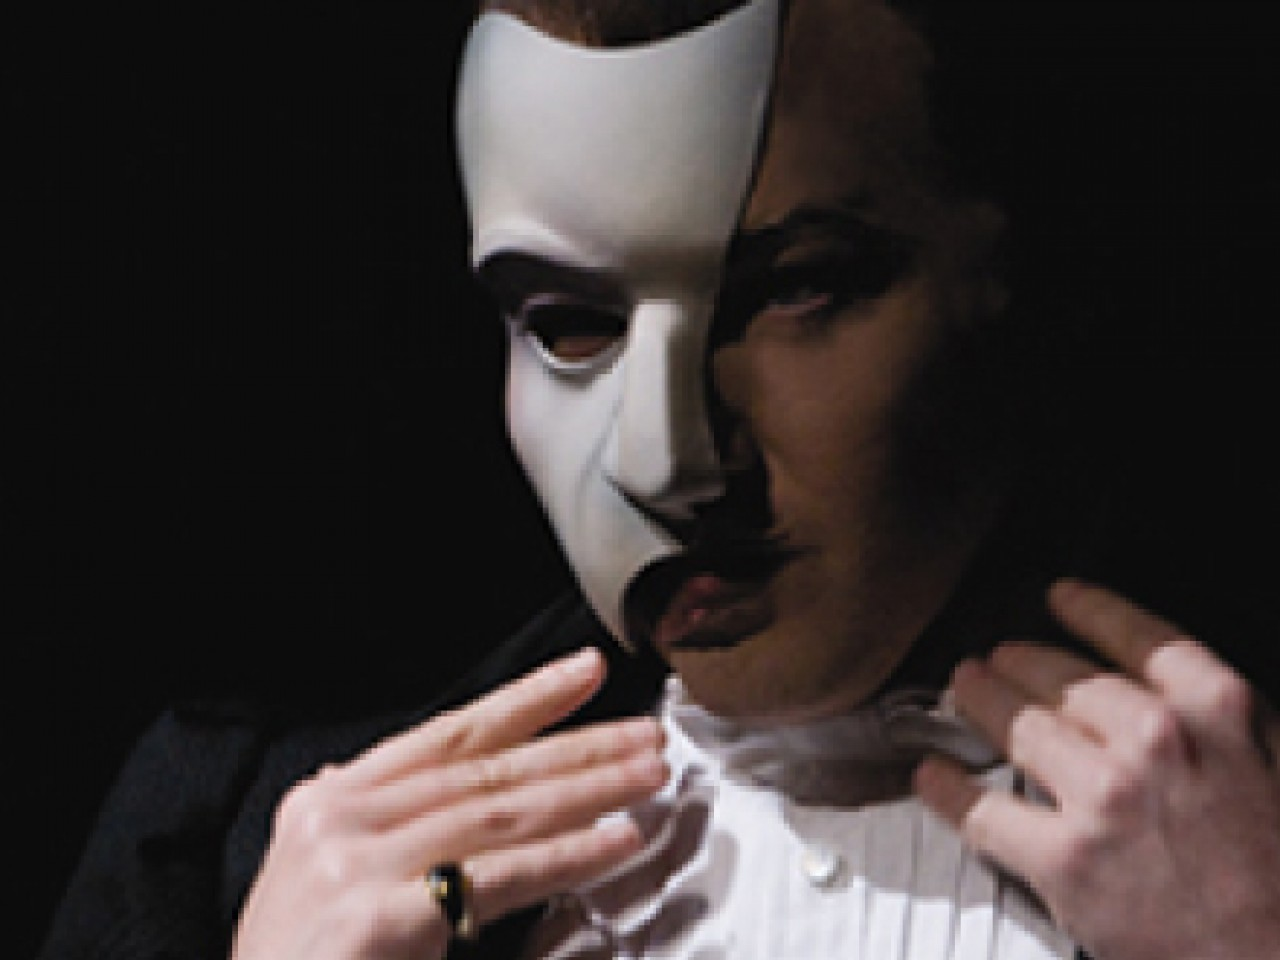 The Phantom of the Opera- Andrew Lloyd Webber's story of sed